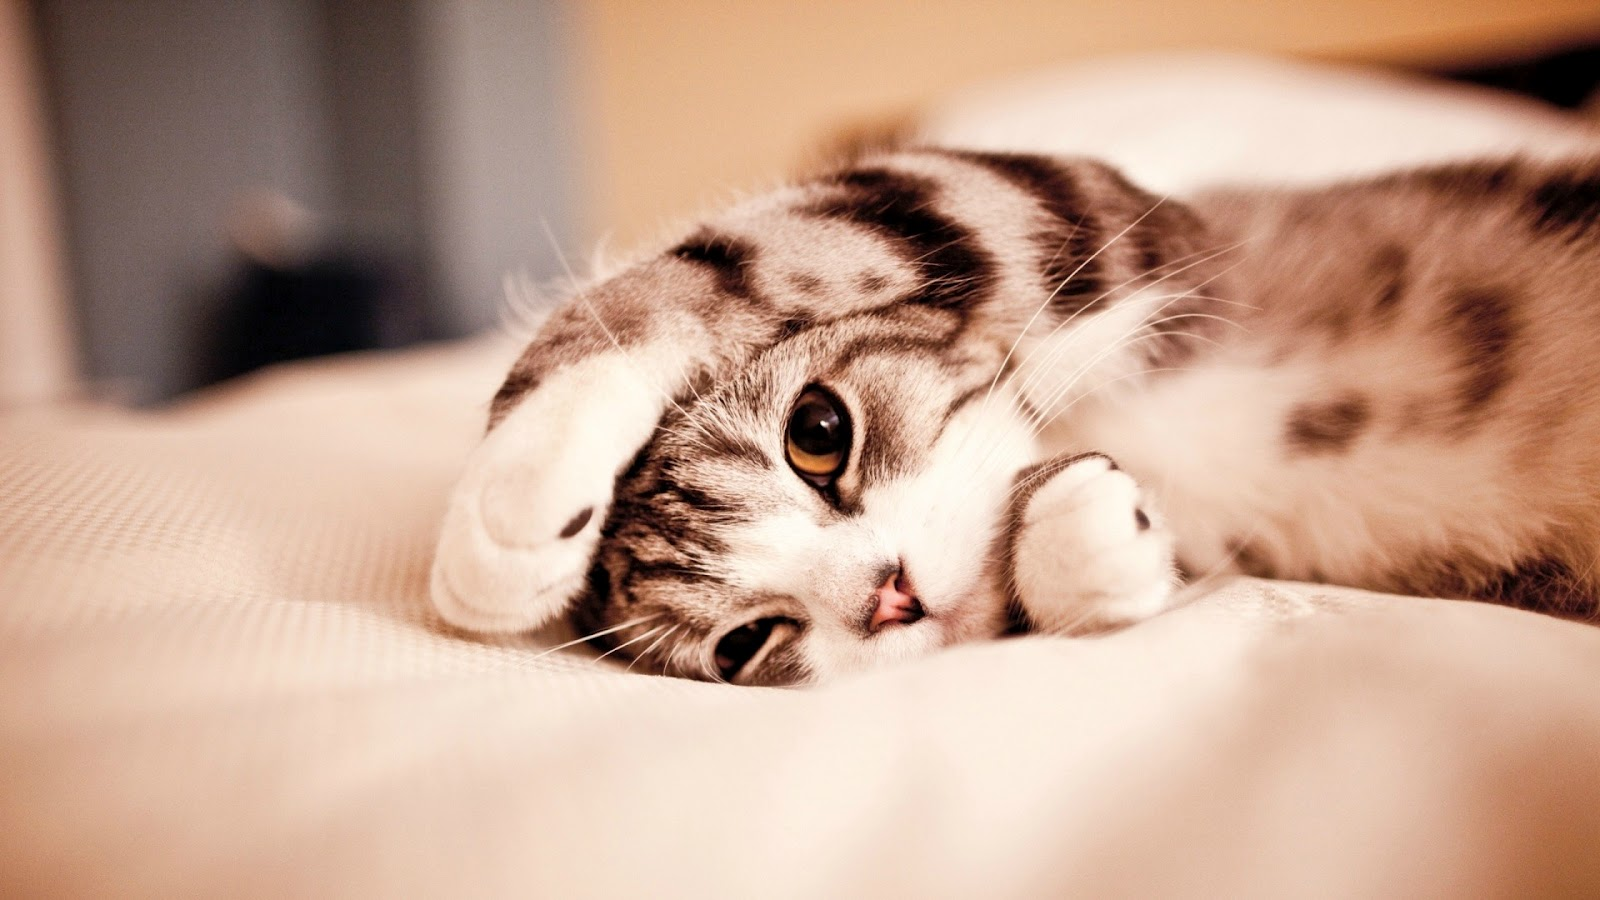 Funny And Cute Cats 10 Hd Wallpaper